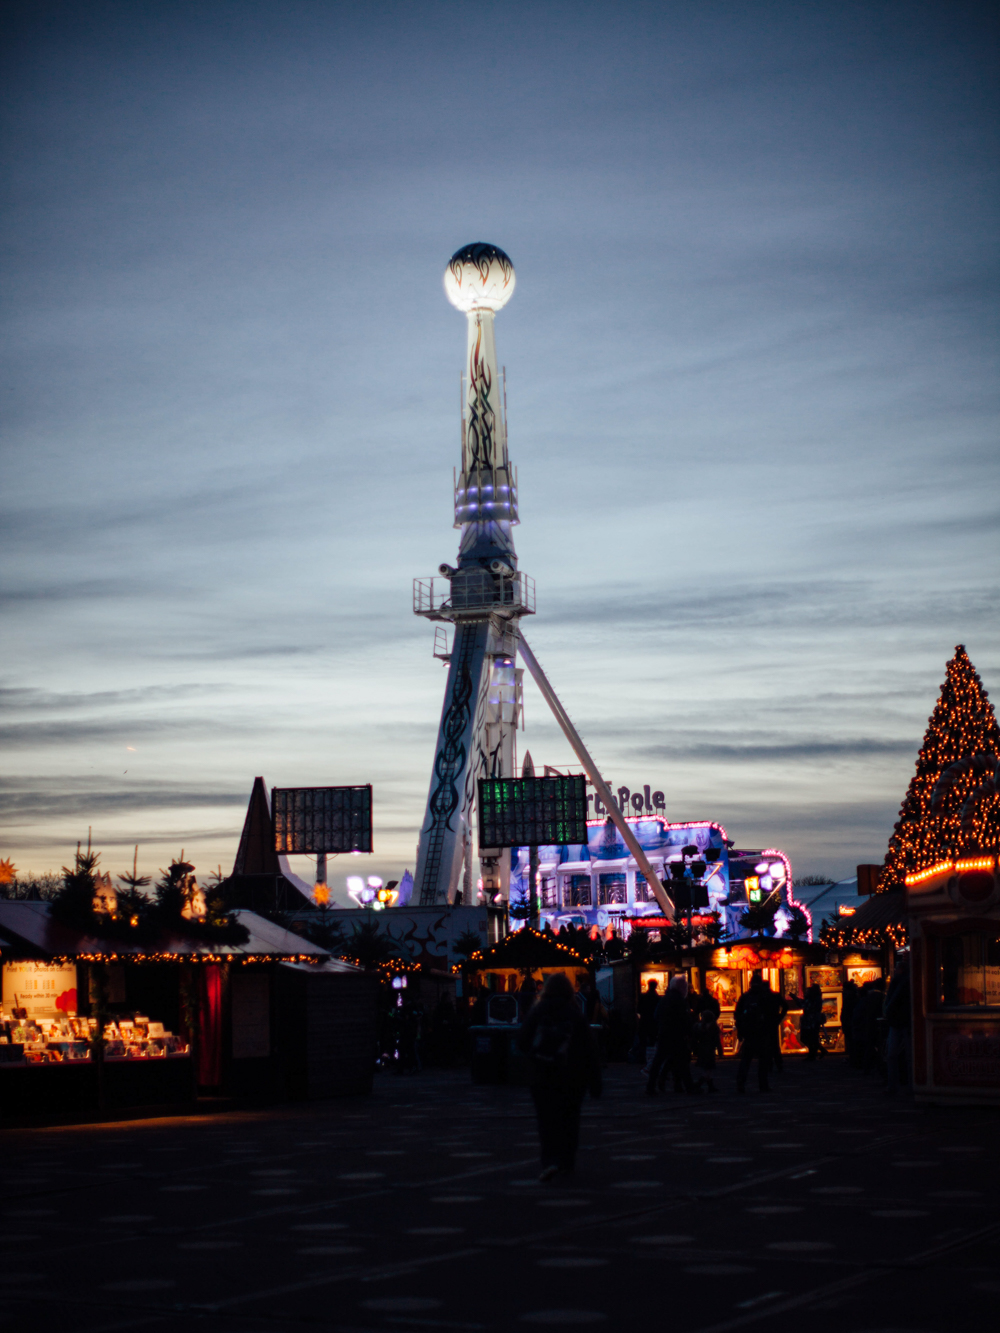 Christmas village and more attractions.